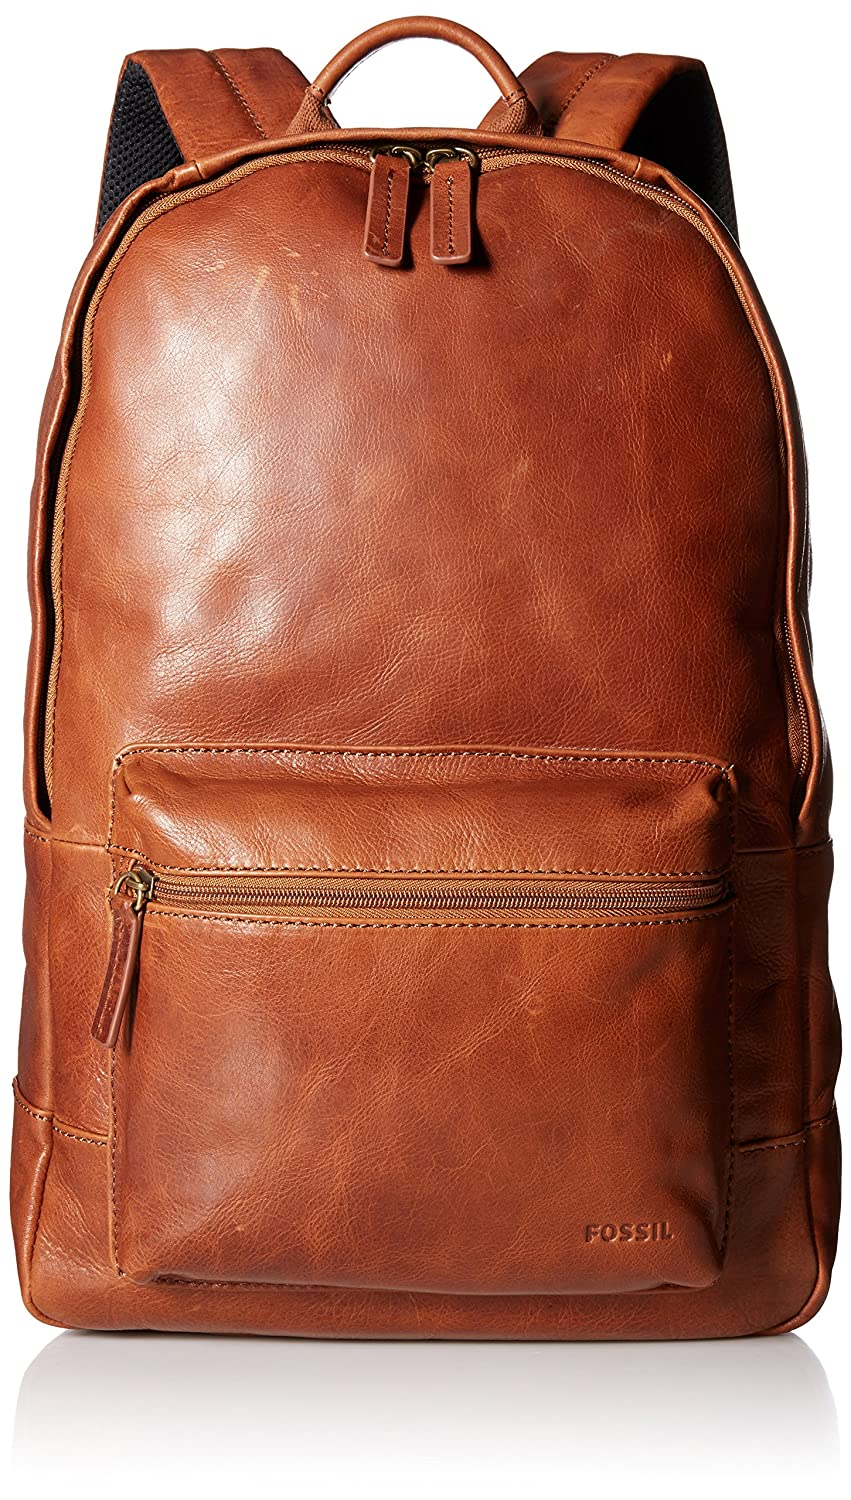 30d5bffff7da Amazon.com  Fossil Men s Leather Estate Backpack